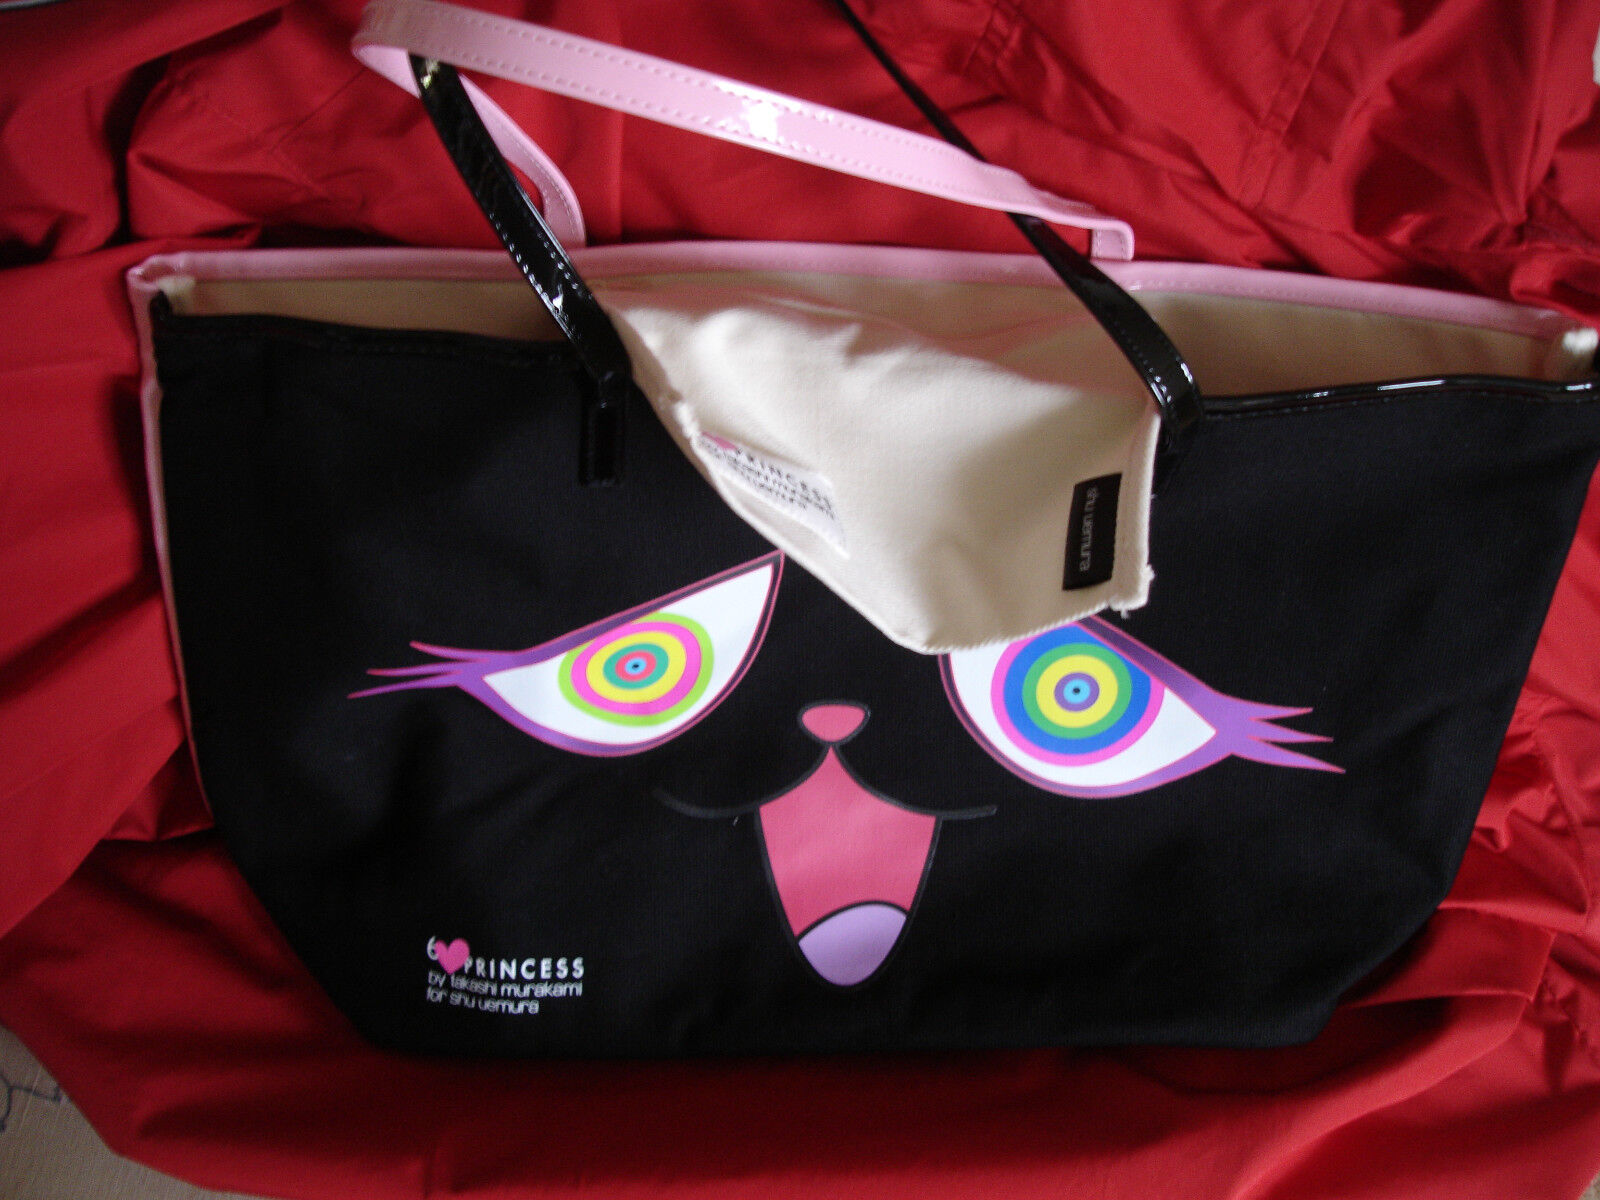 TAKASHI MURAKAMI X SHU UEMURA 2-SIDED 6 HP TM//KK MOVIE TOTE BAG 1 SEALED /& NEW